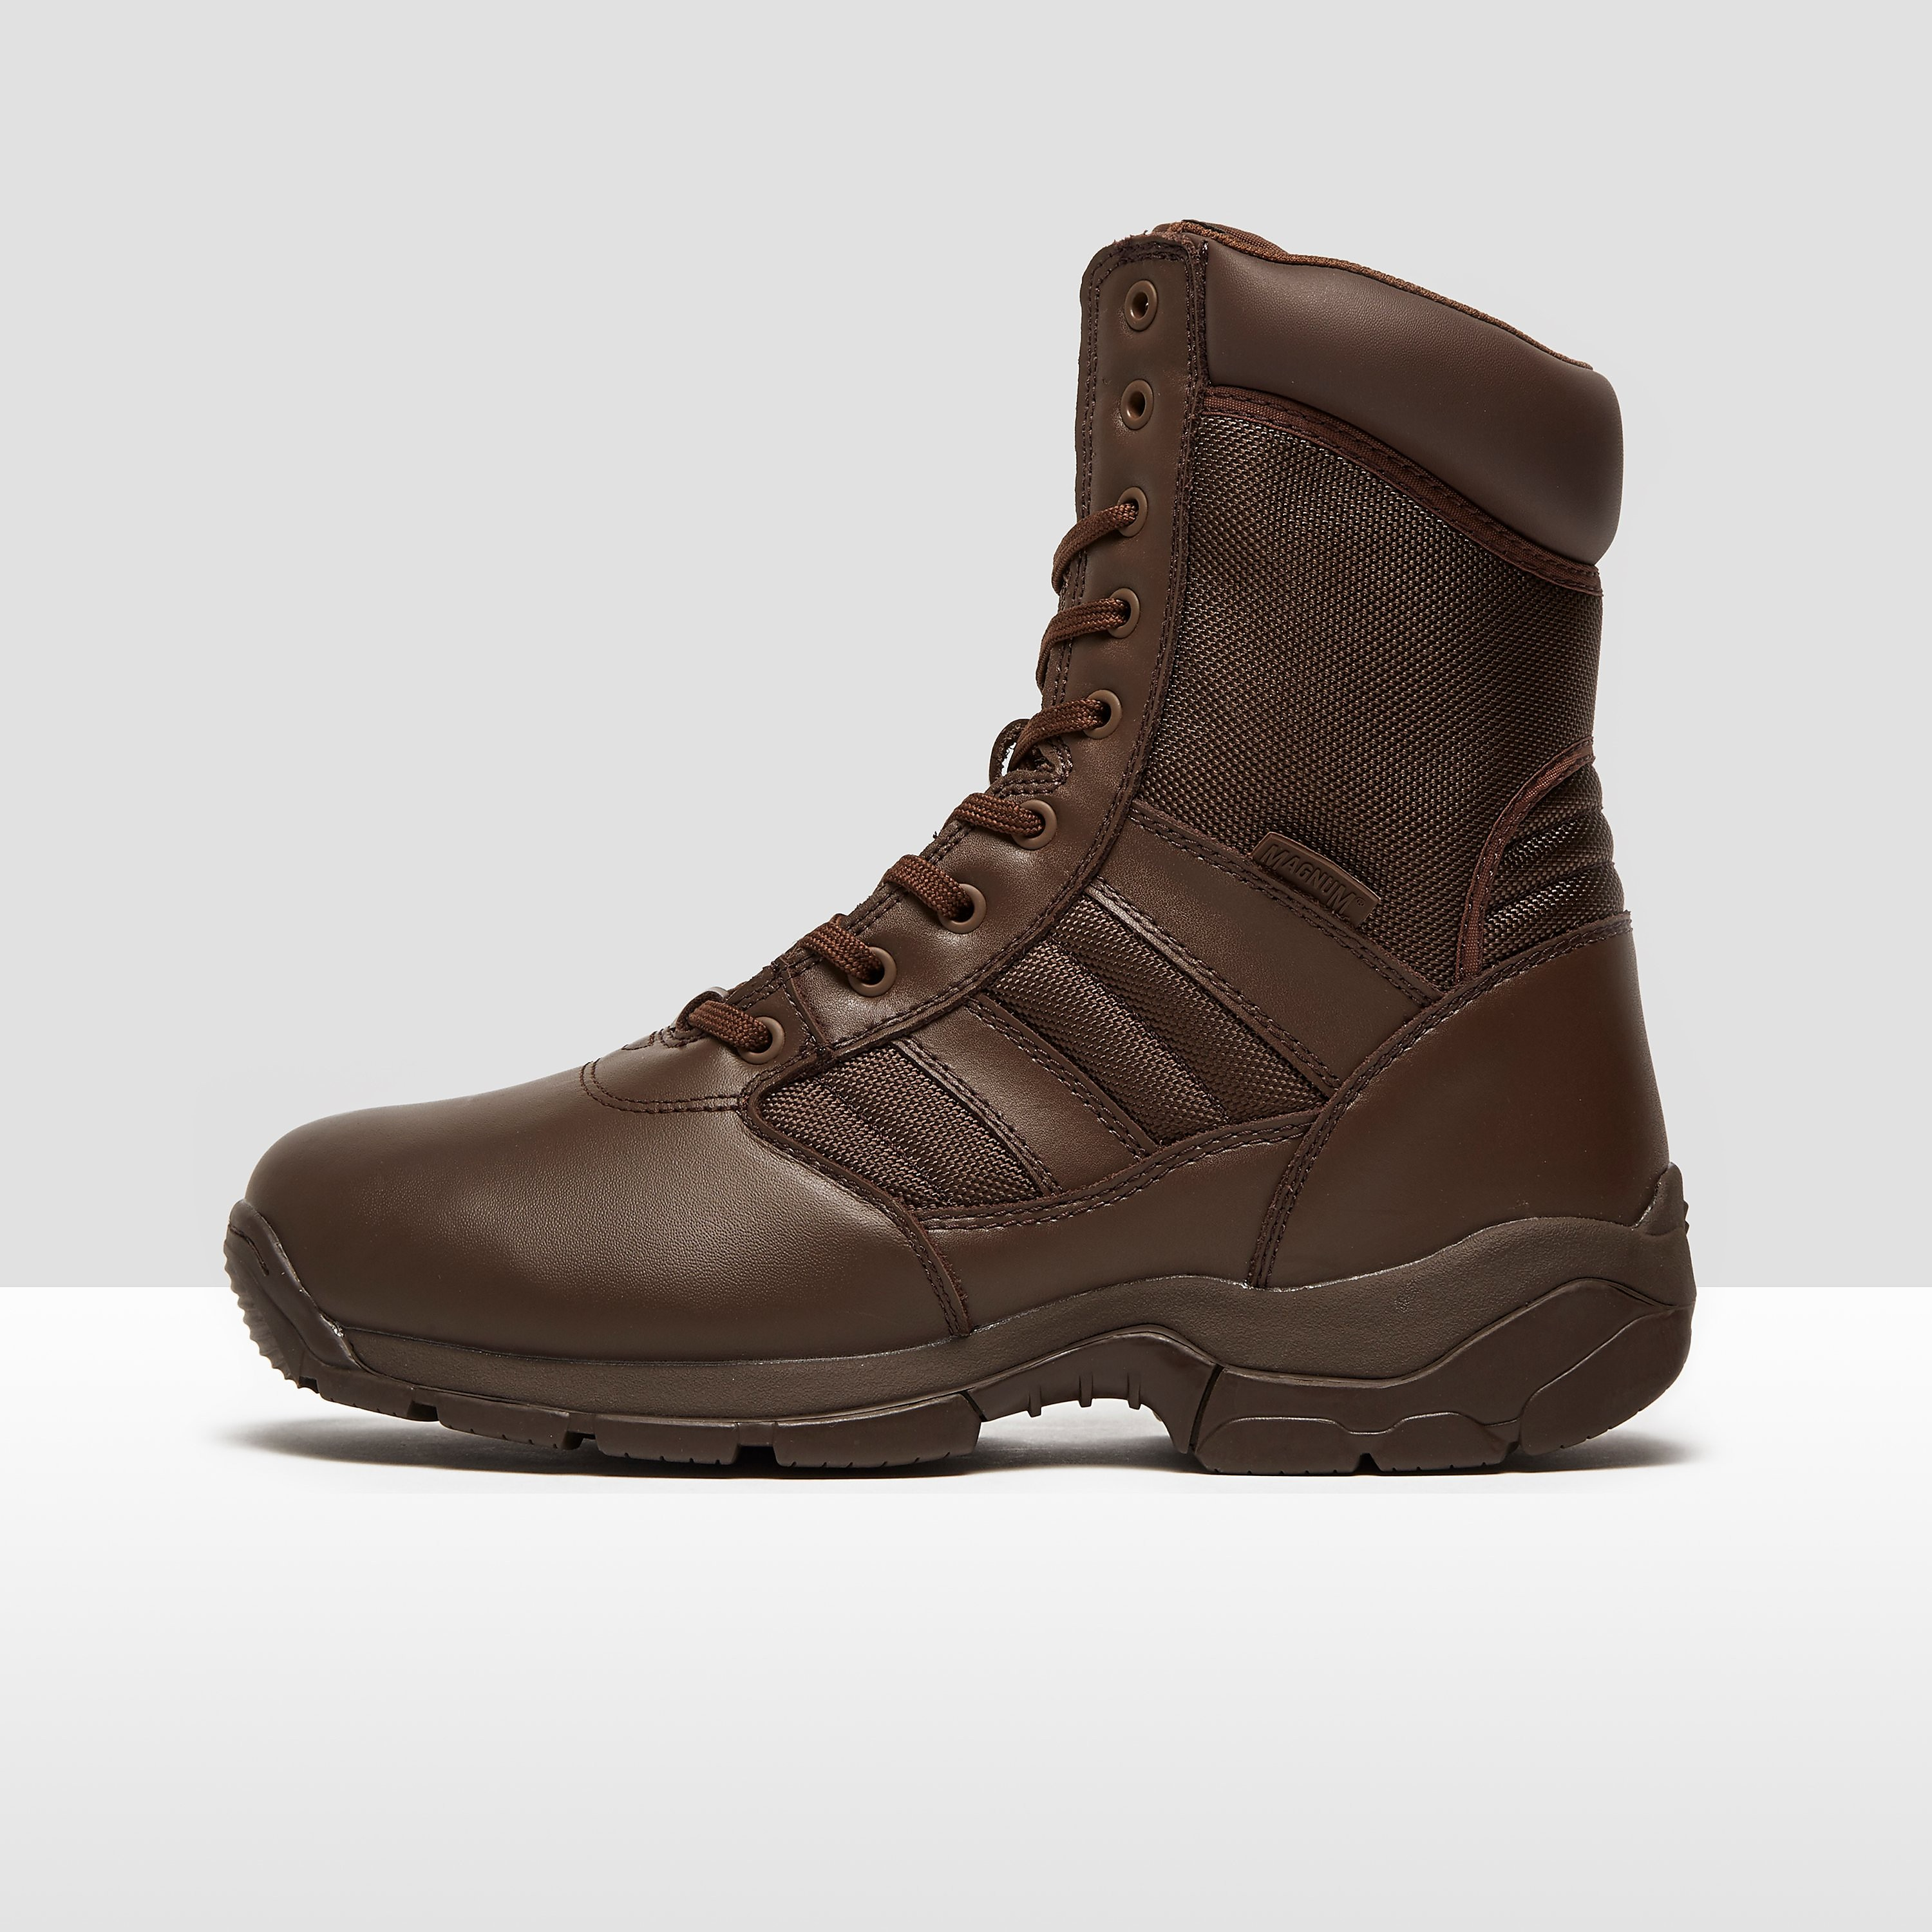 Magnum Panther 8.0 Adult Boots